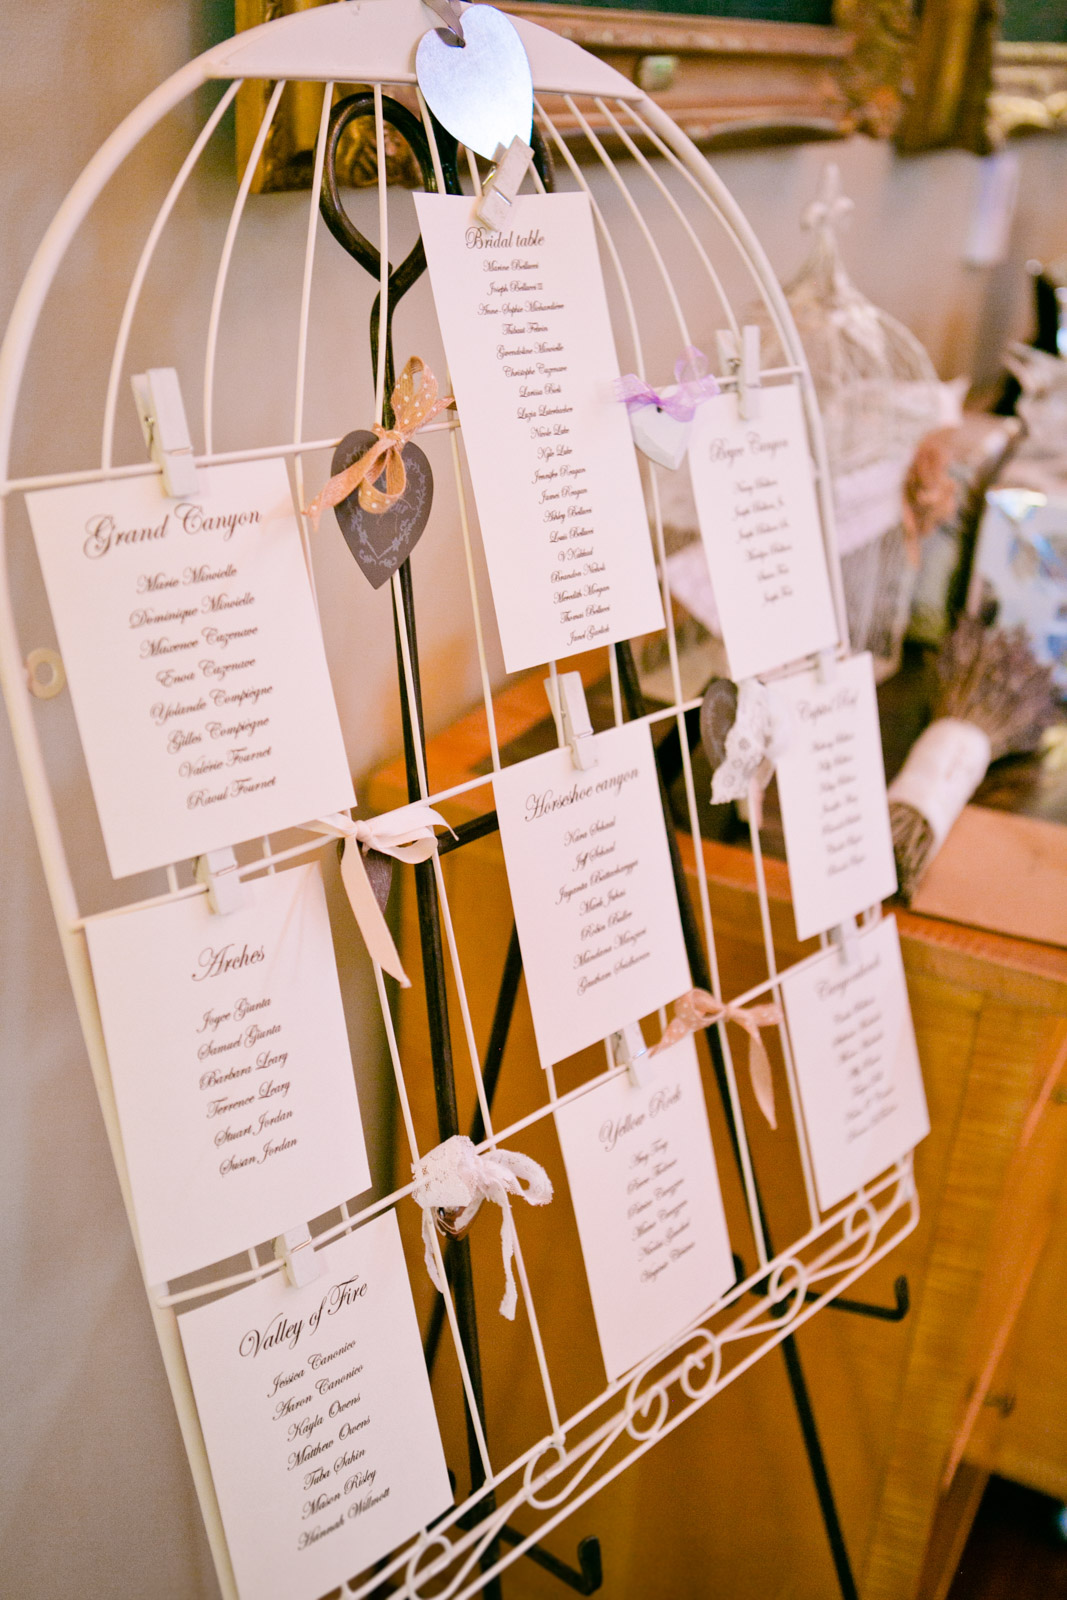 5x7 cards with guests listed are clipped to a large birdcage for a unique table seating assignment at a wedding